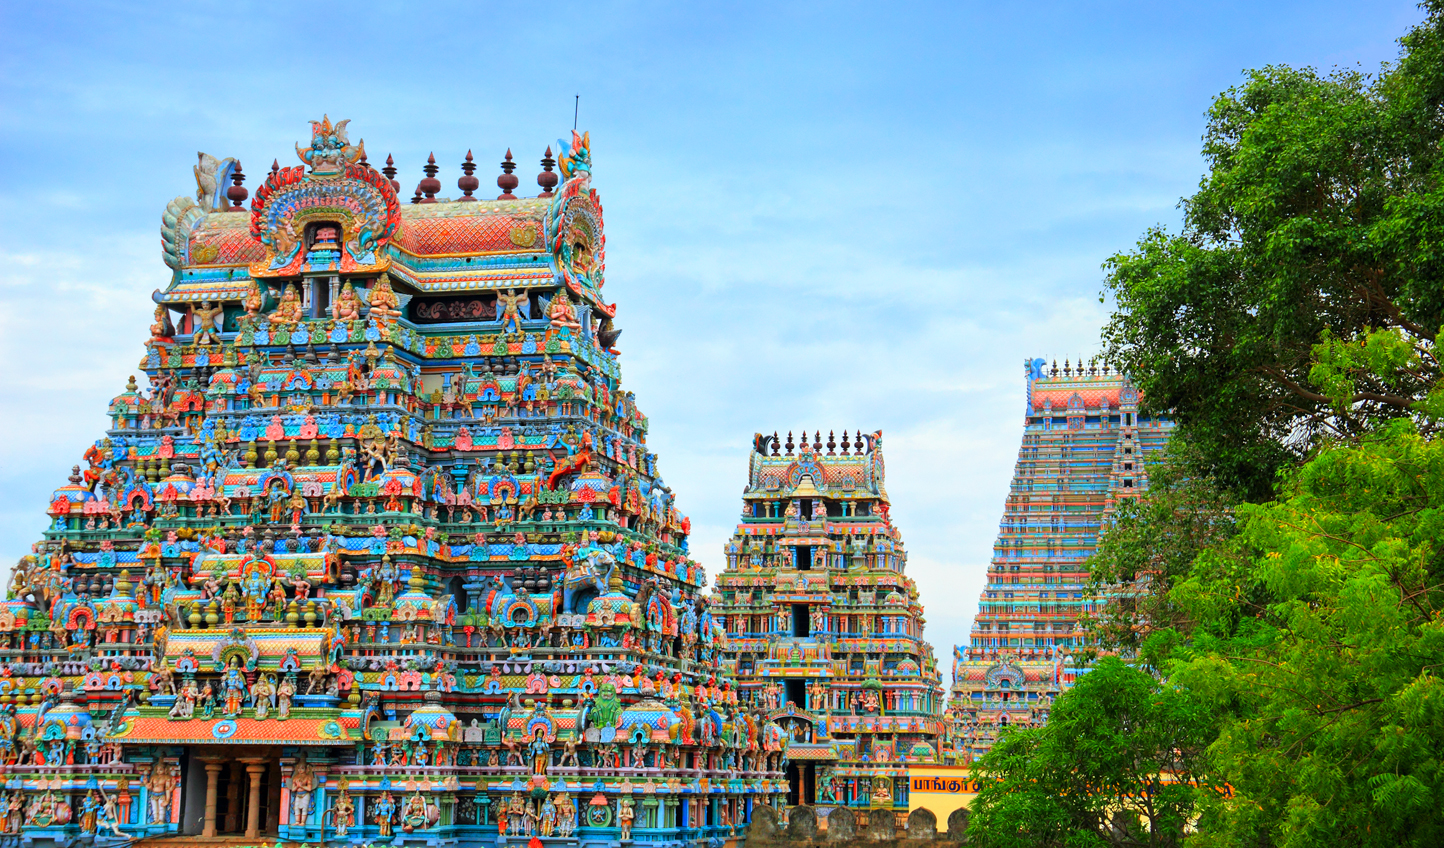 The colourful Kapaleeshwar Temple in Chennai